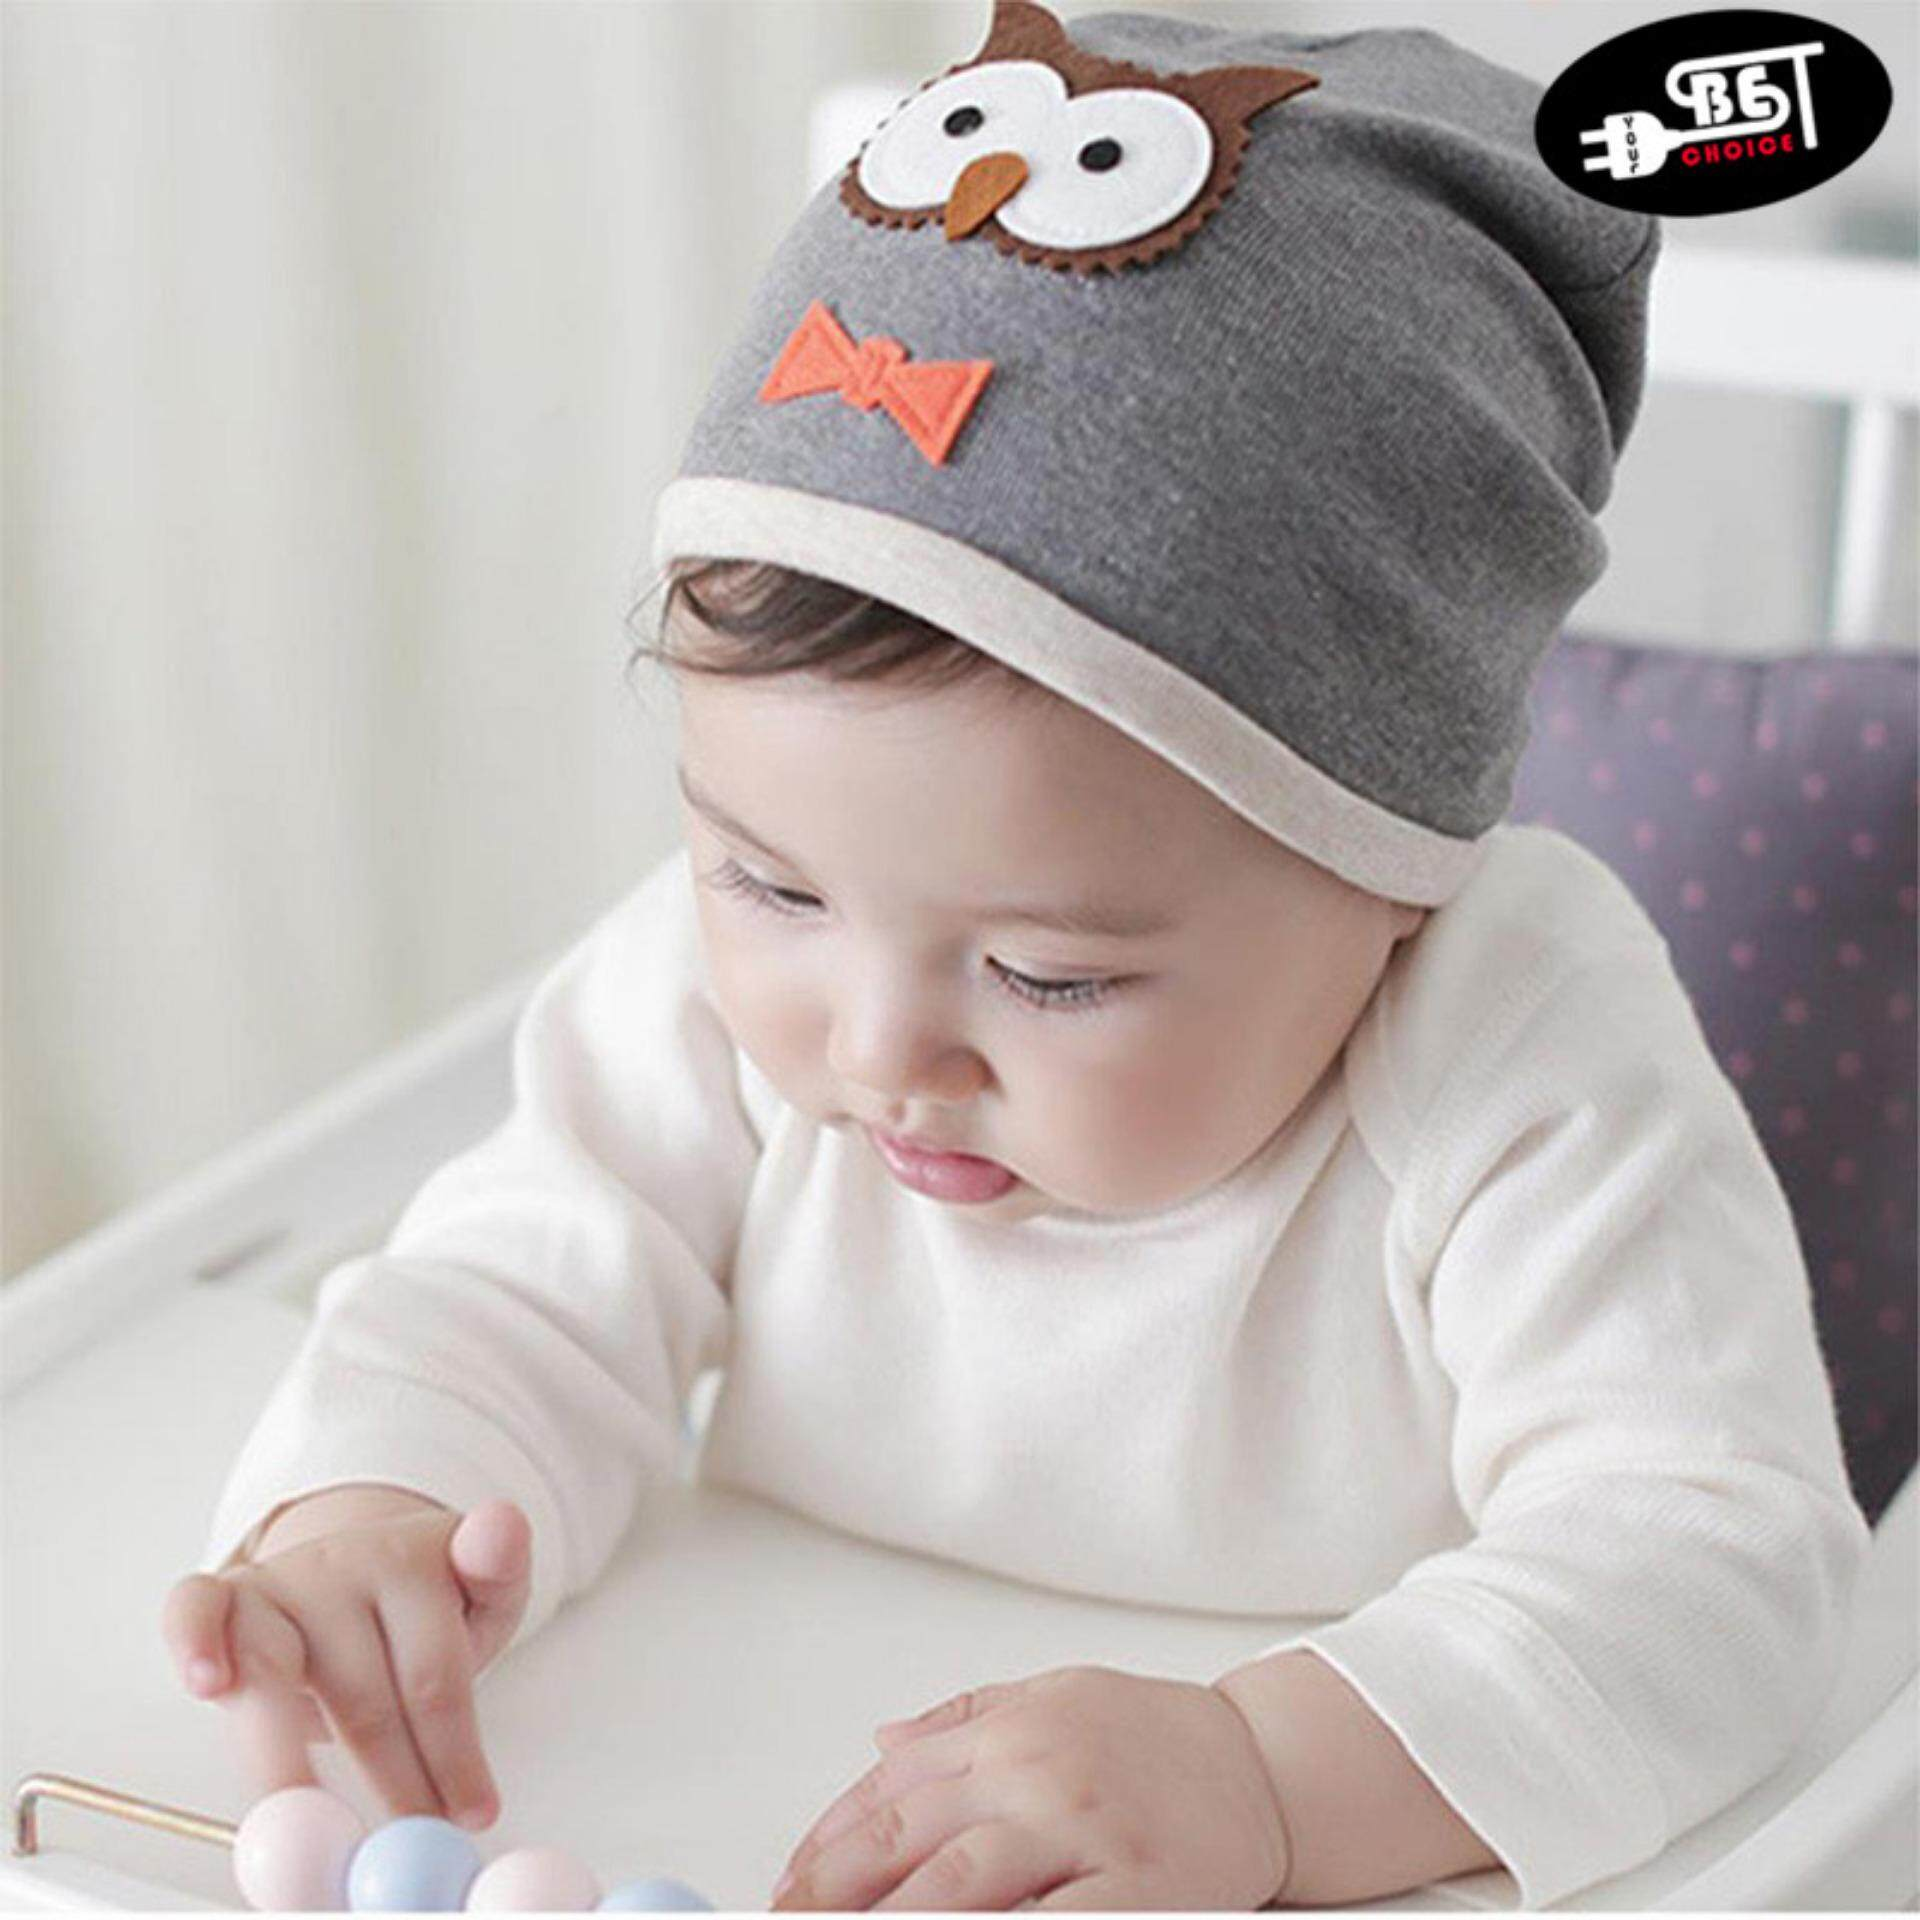 74d4a69771b Baby Boys  Accessories - Hats   Caps - Buy Baby Boys  Accessories ...